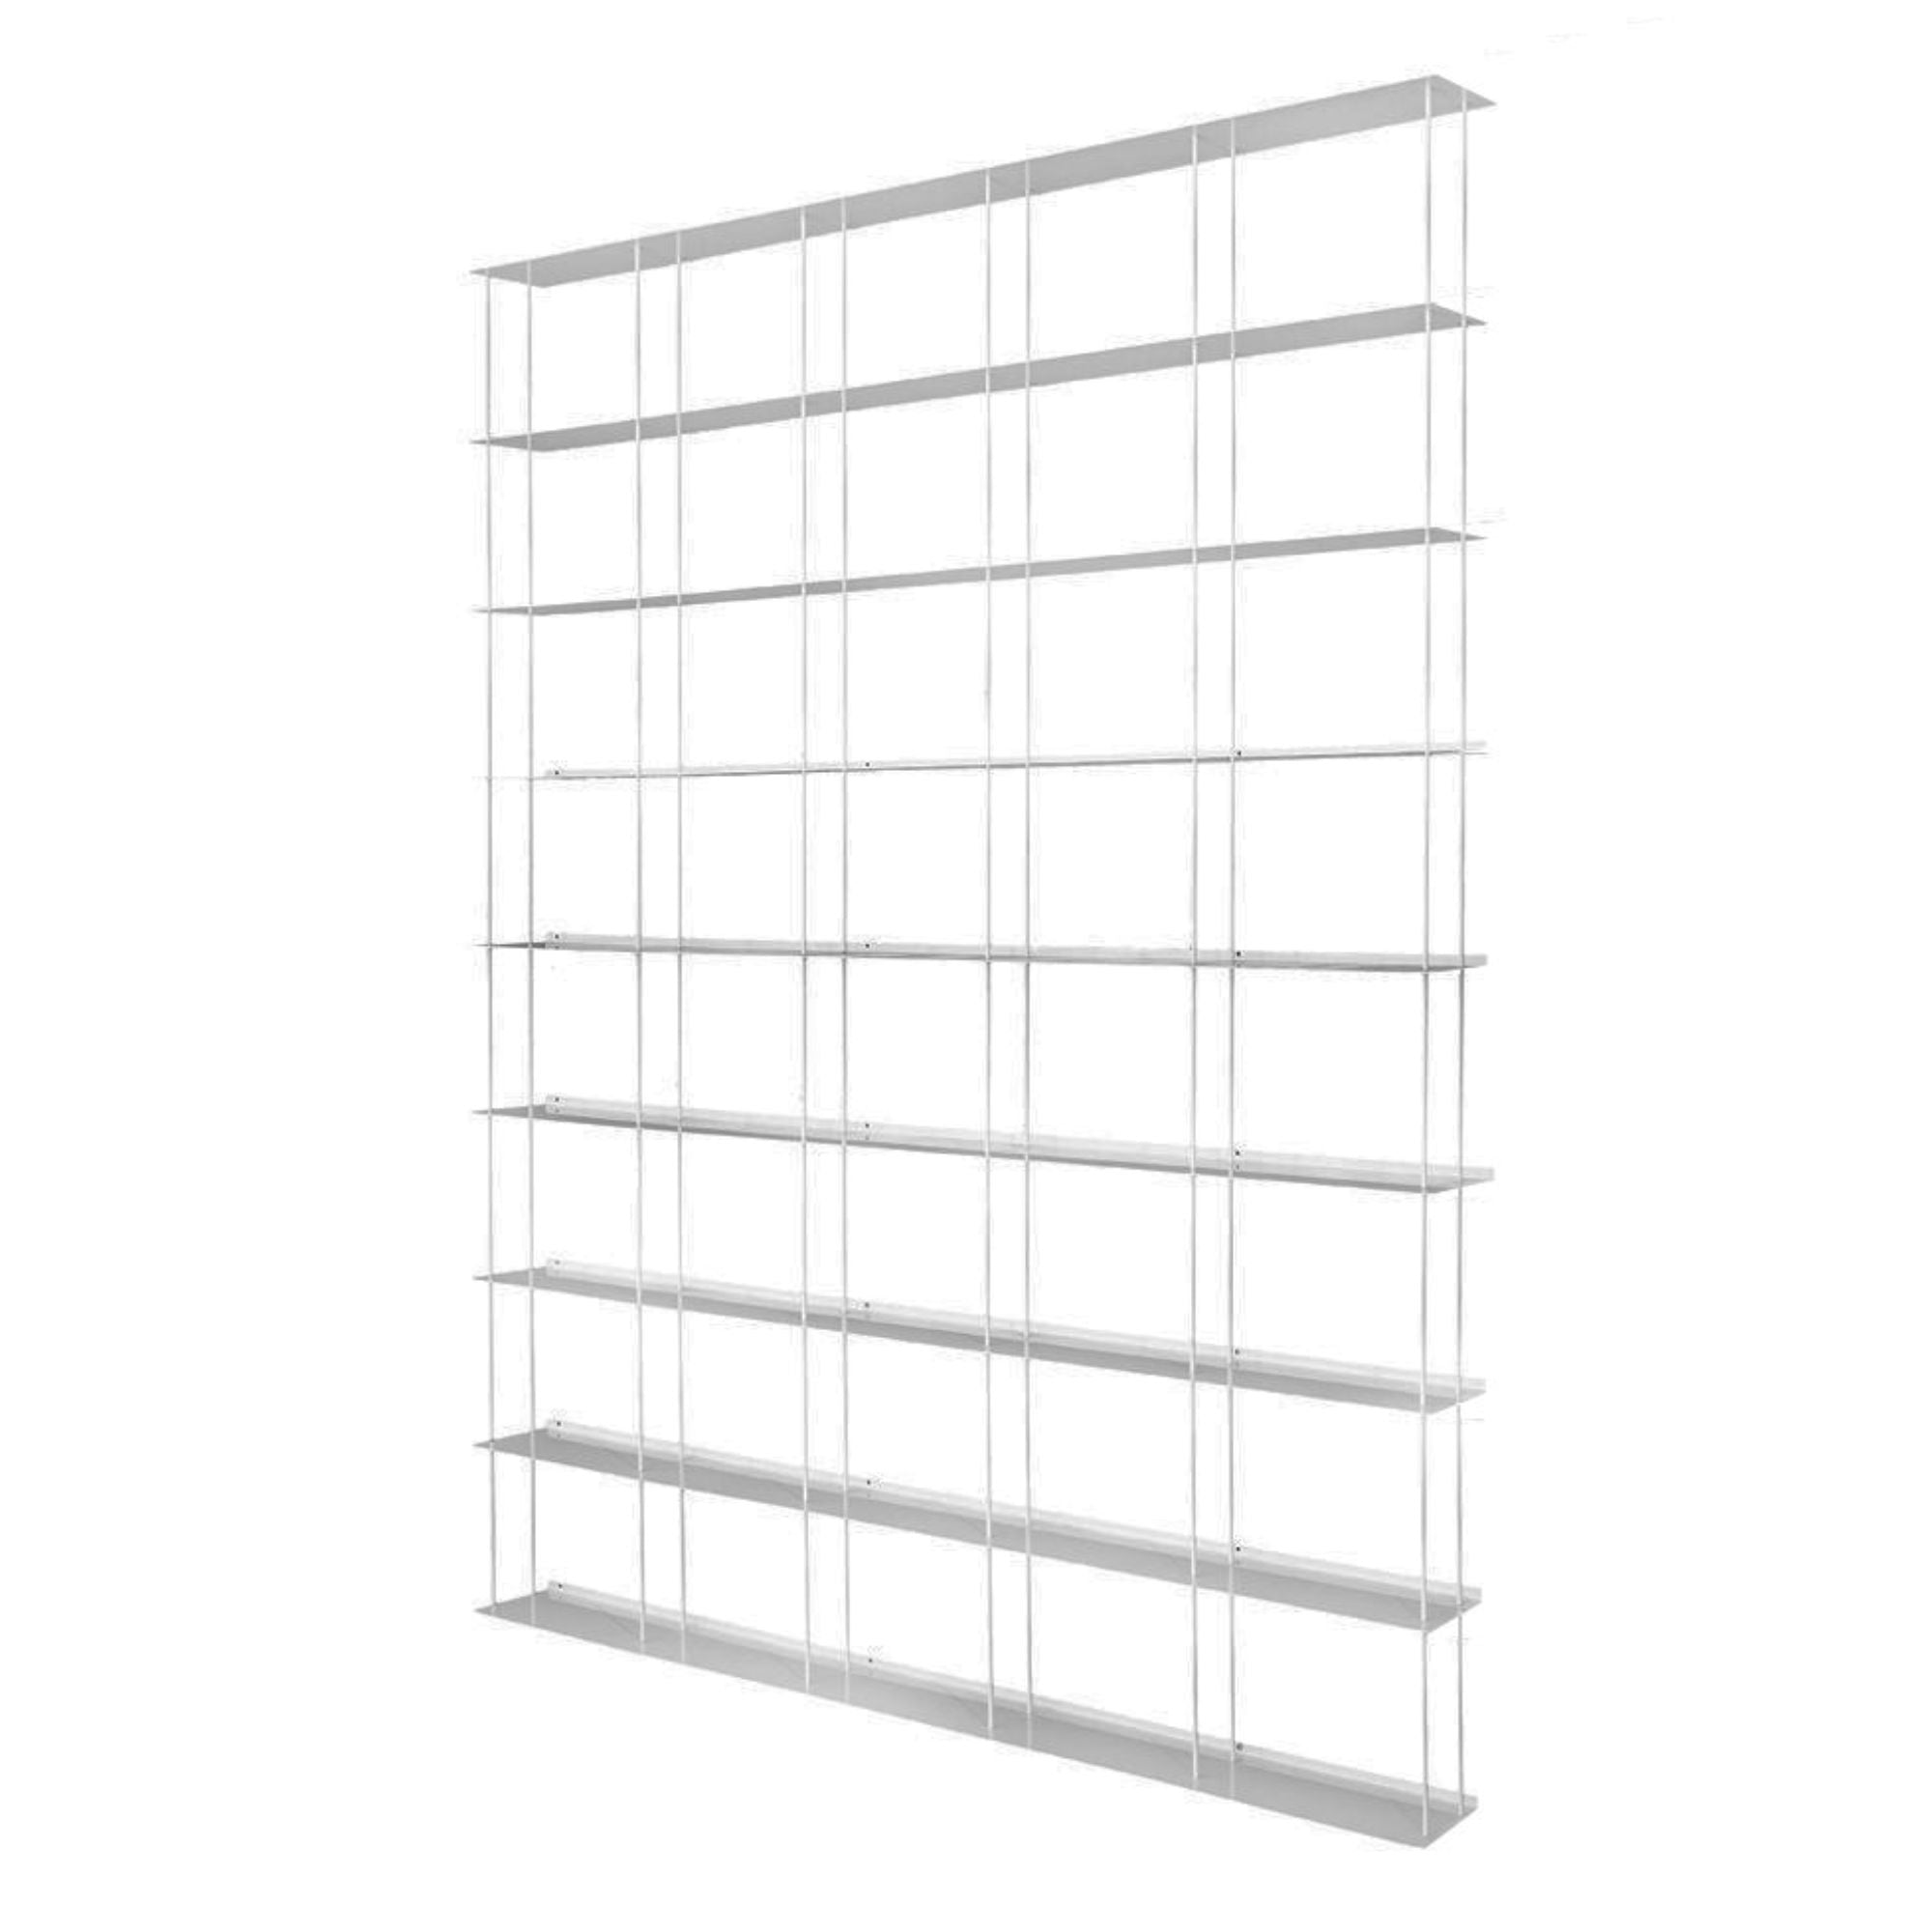 Kriptonite Krossing Shelving Unit 166x200cm , Aluminium